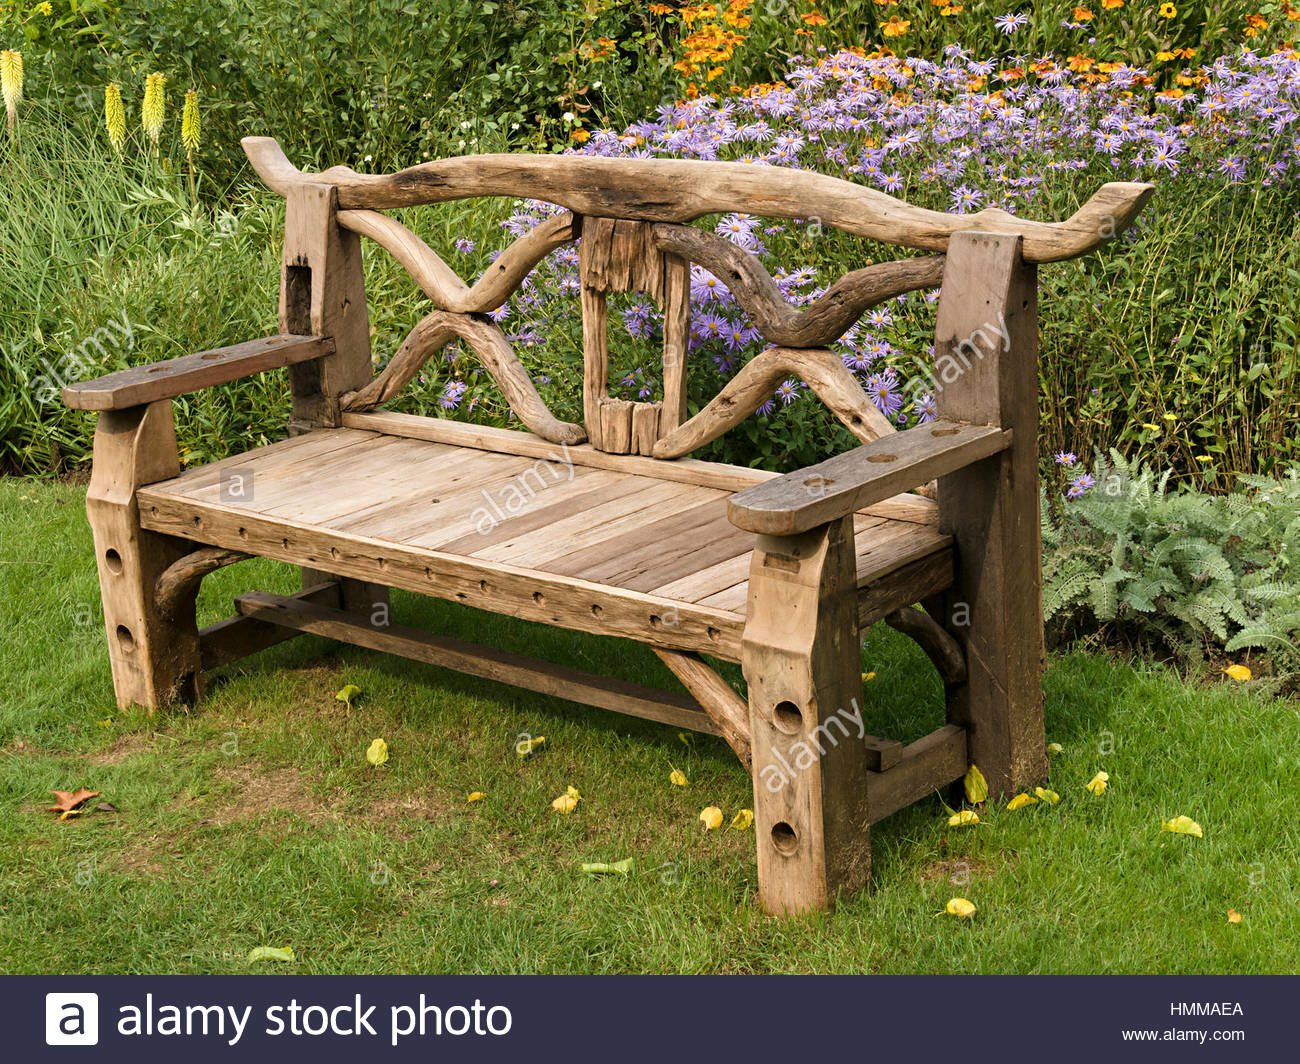 wooden garden benches ornate, rustic, wooden garden bench seat made from recycled wooden parts, DQGLMEG